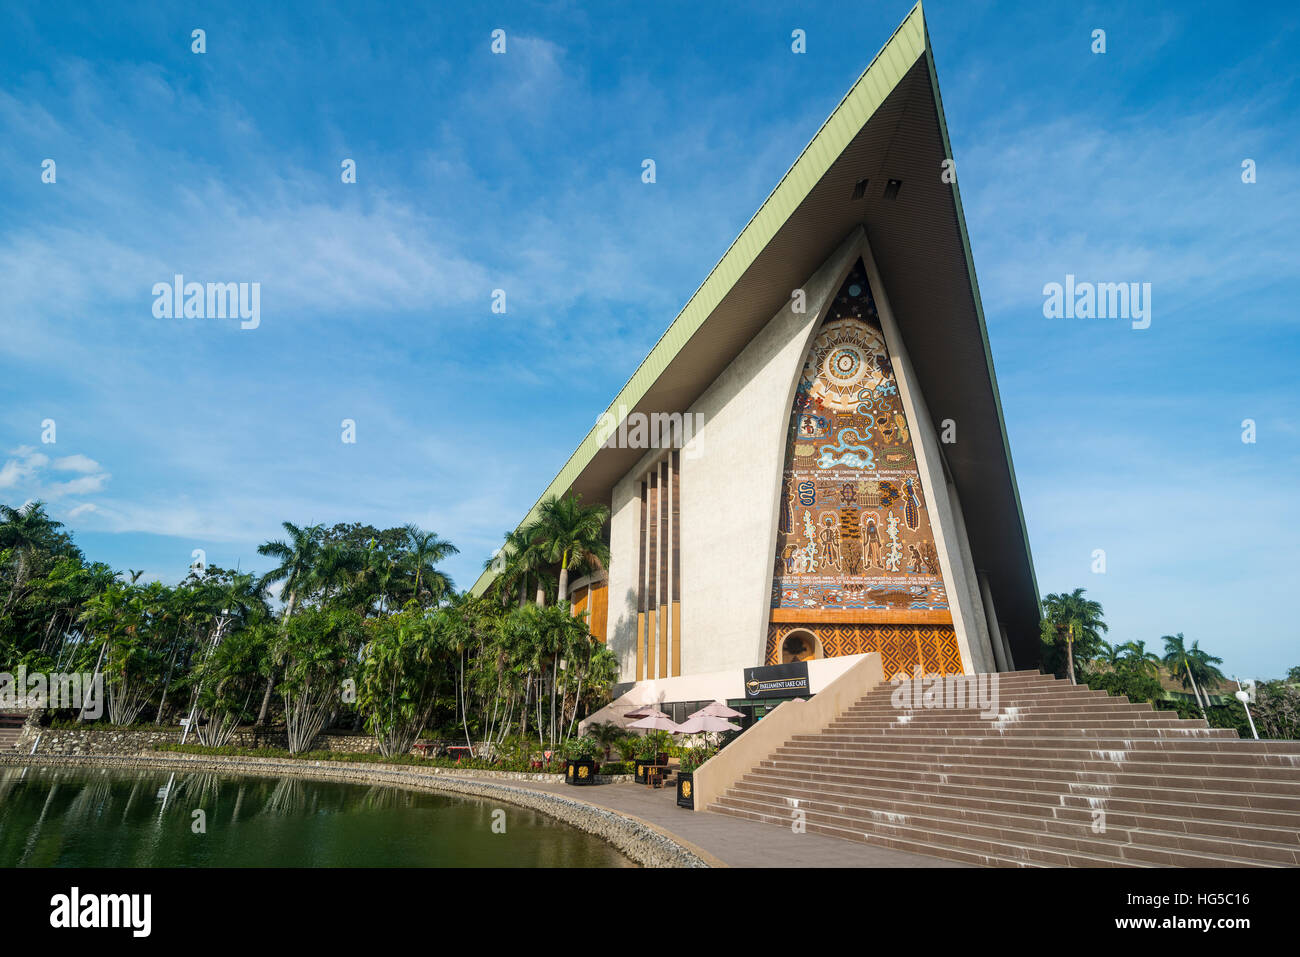 National Parliament, Port Moresby, Papua New Guinea, Pacific - Stock Image